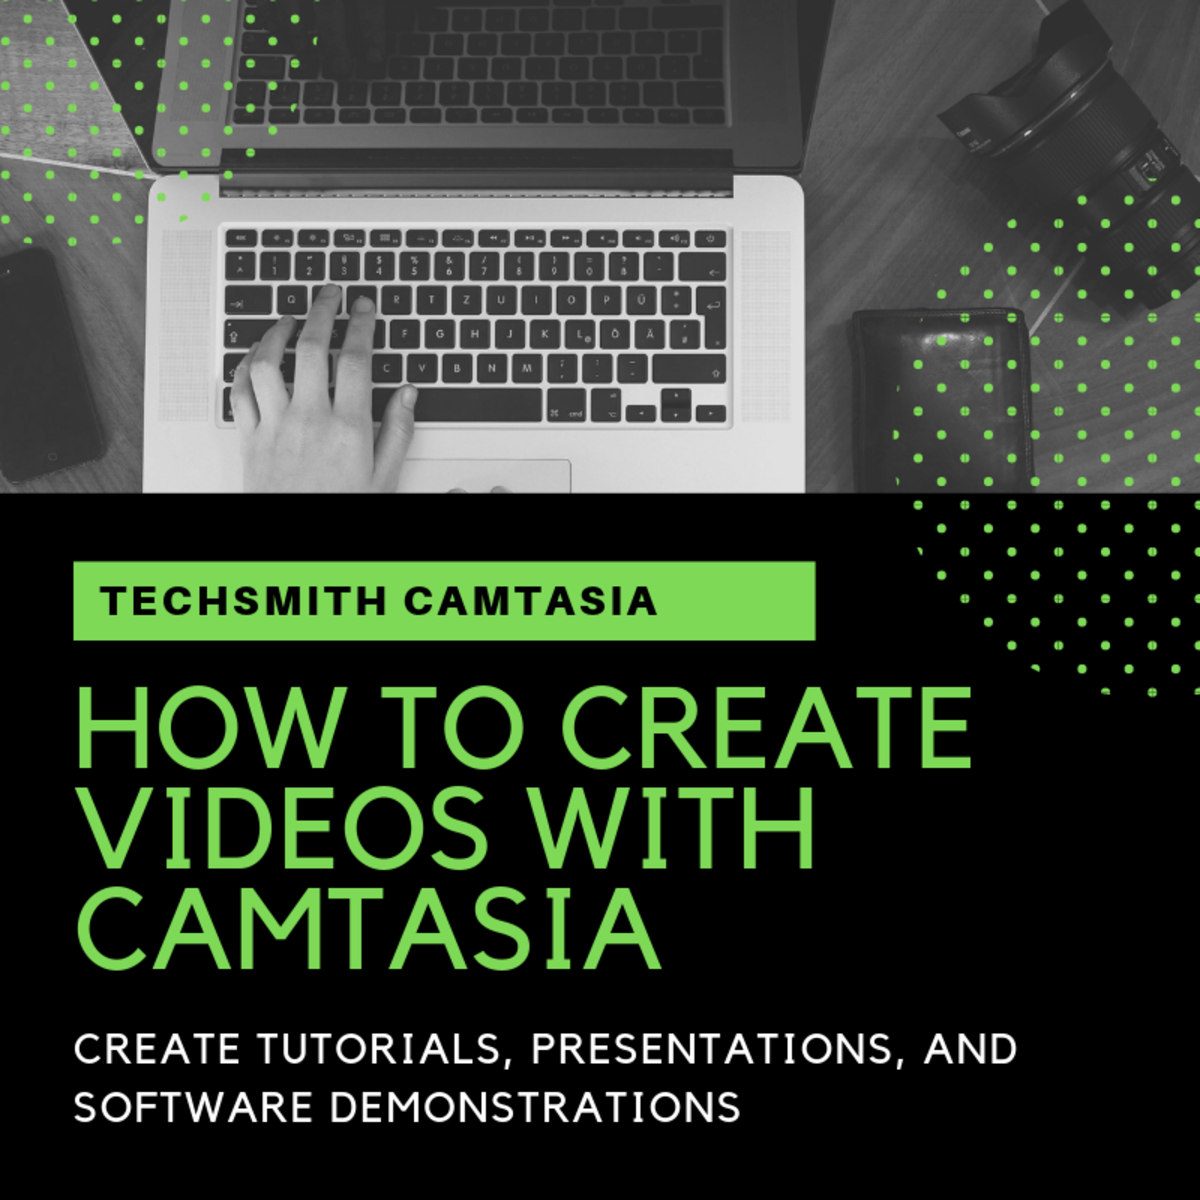 How to Create Videos With Camtasia